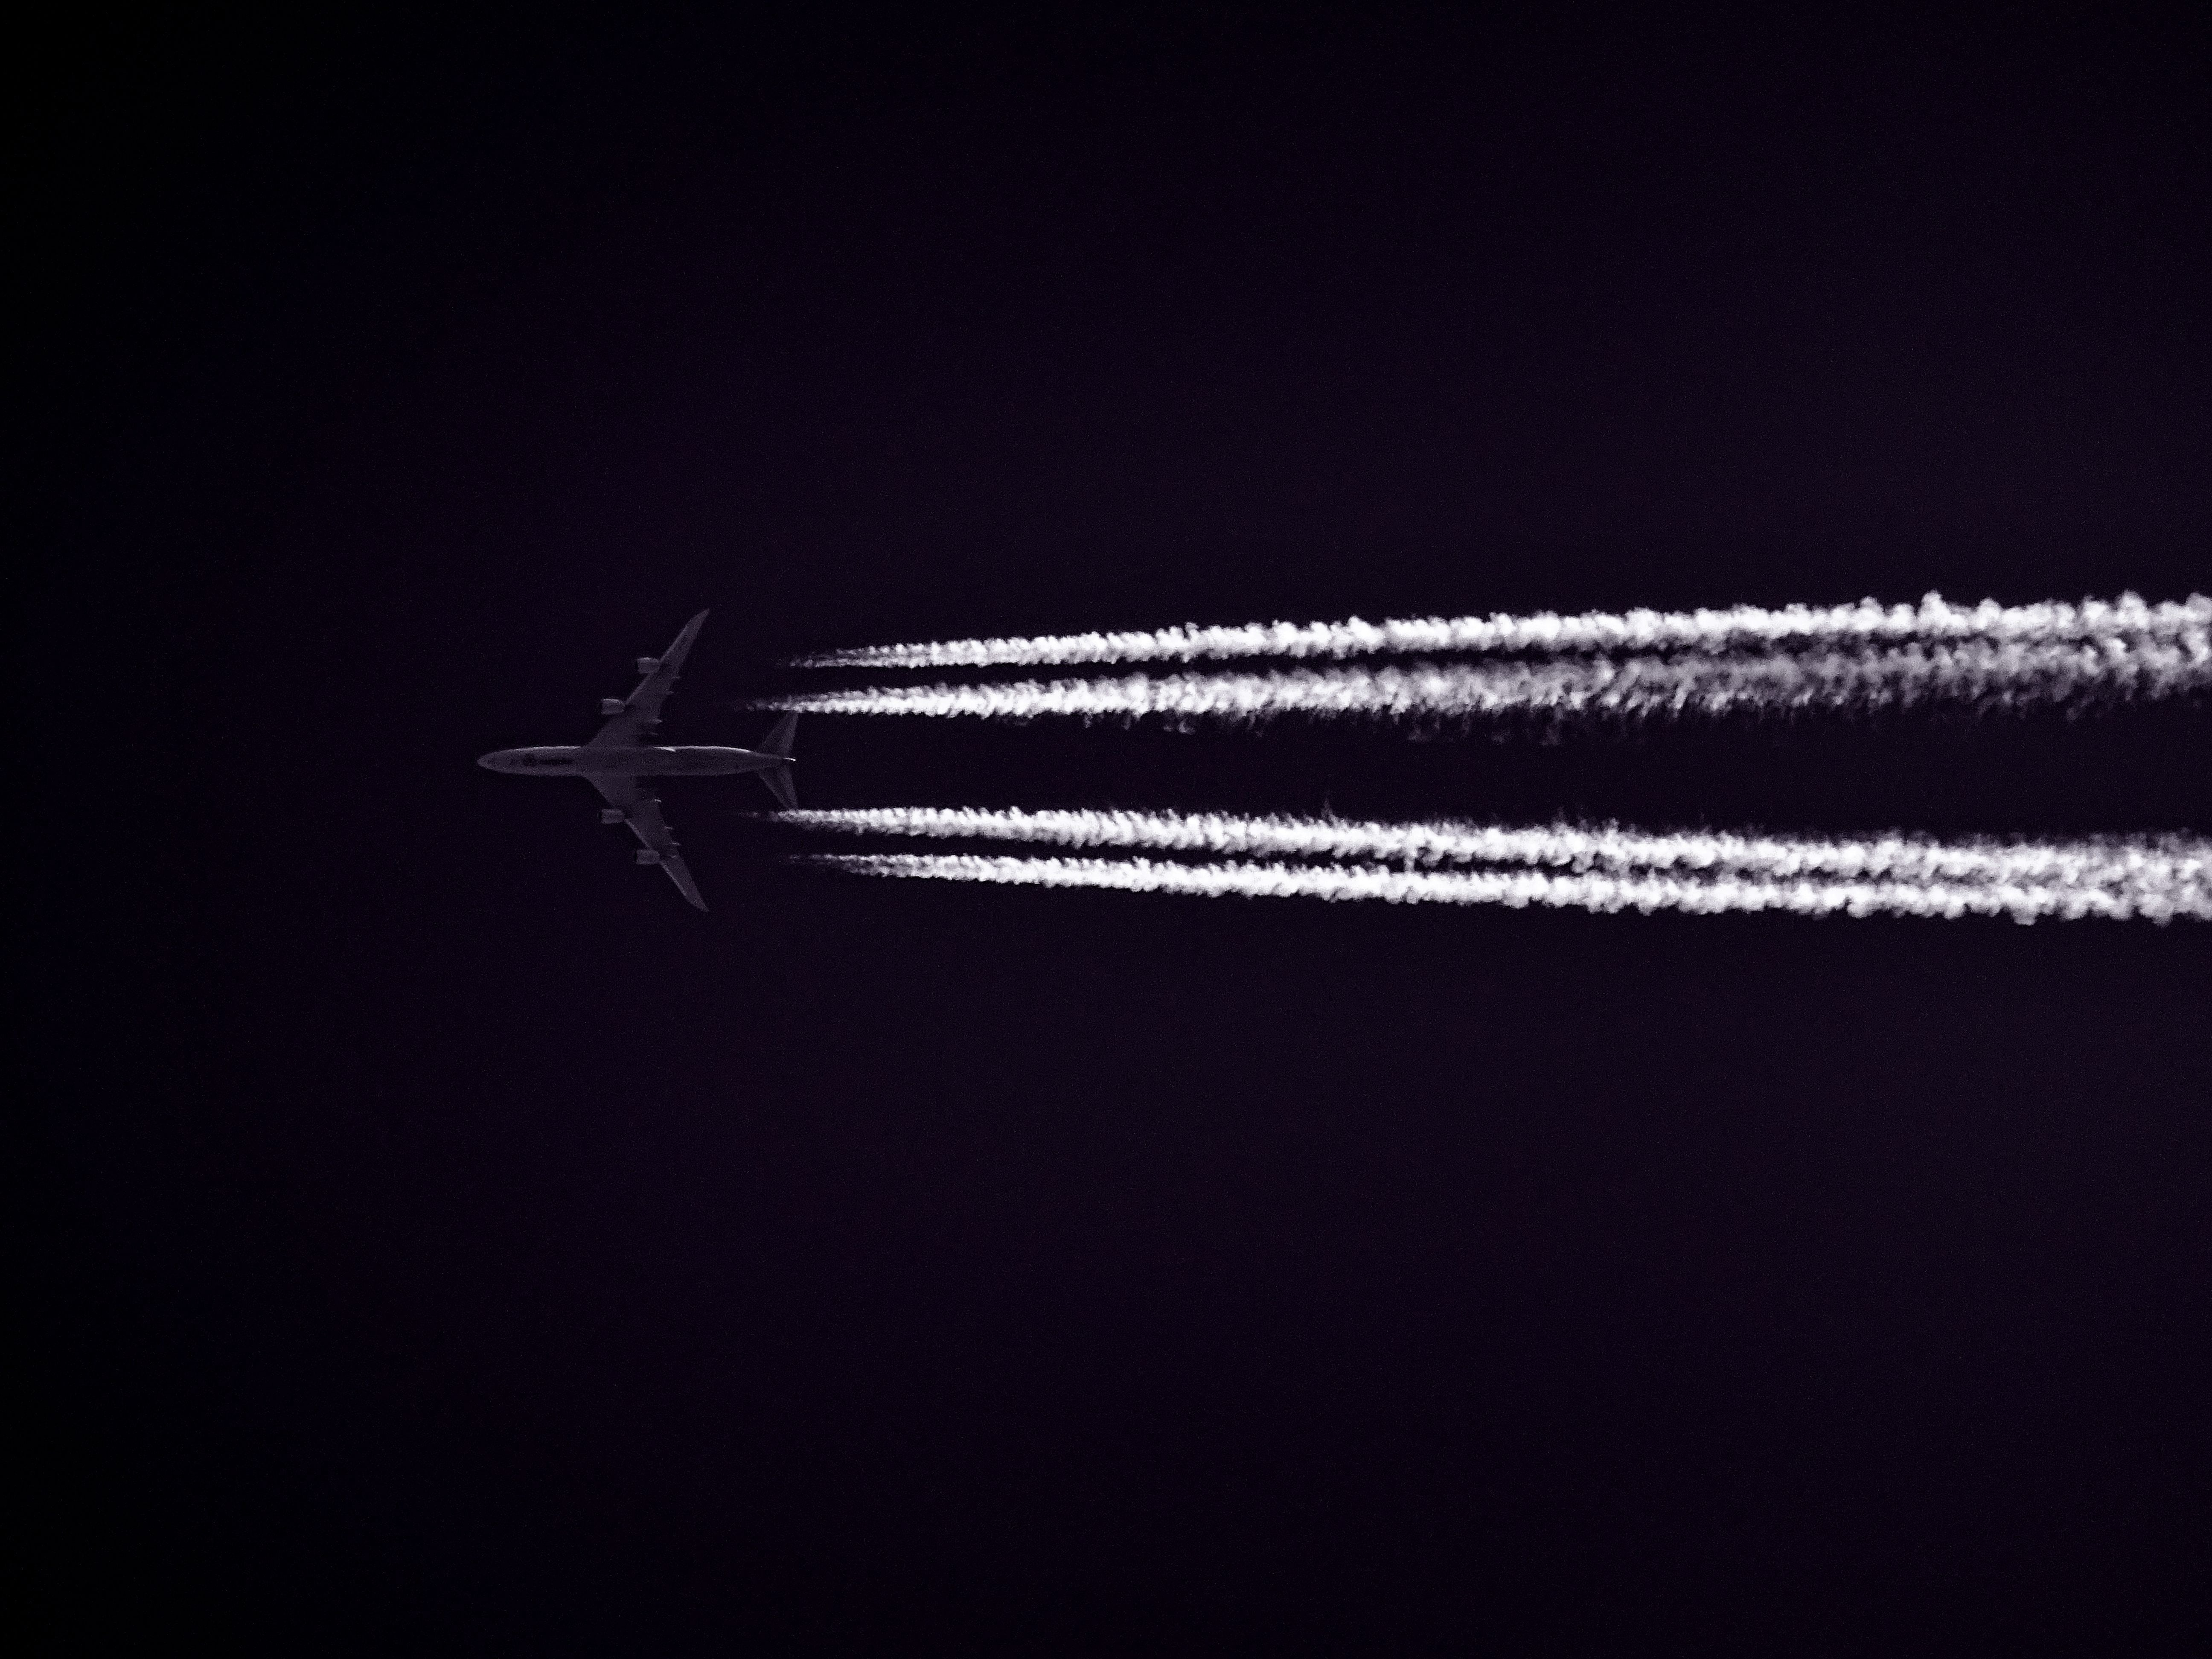 Photo Of Airplane Across The Clouds During Night Time 3900 5184x3888